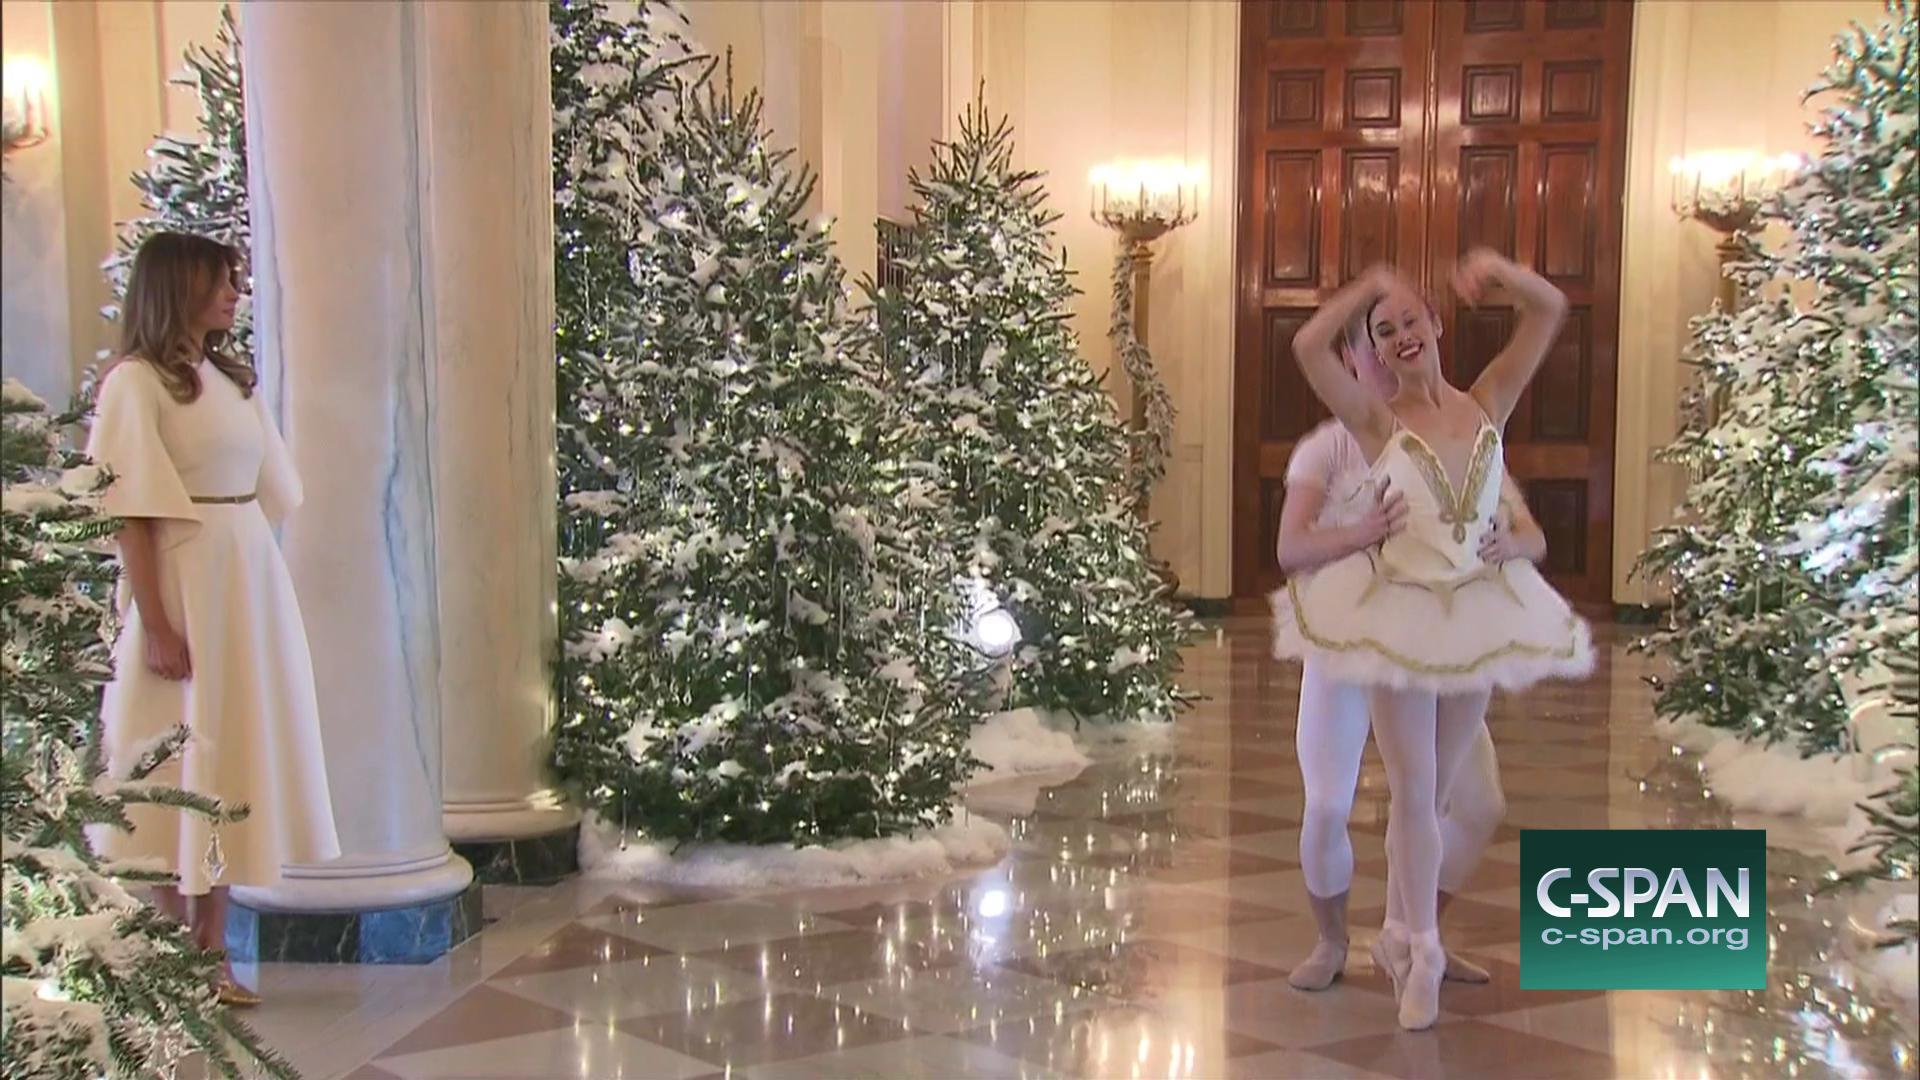 lady meets children making white house holiday decorations nov 27 2017